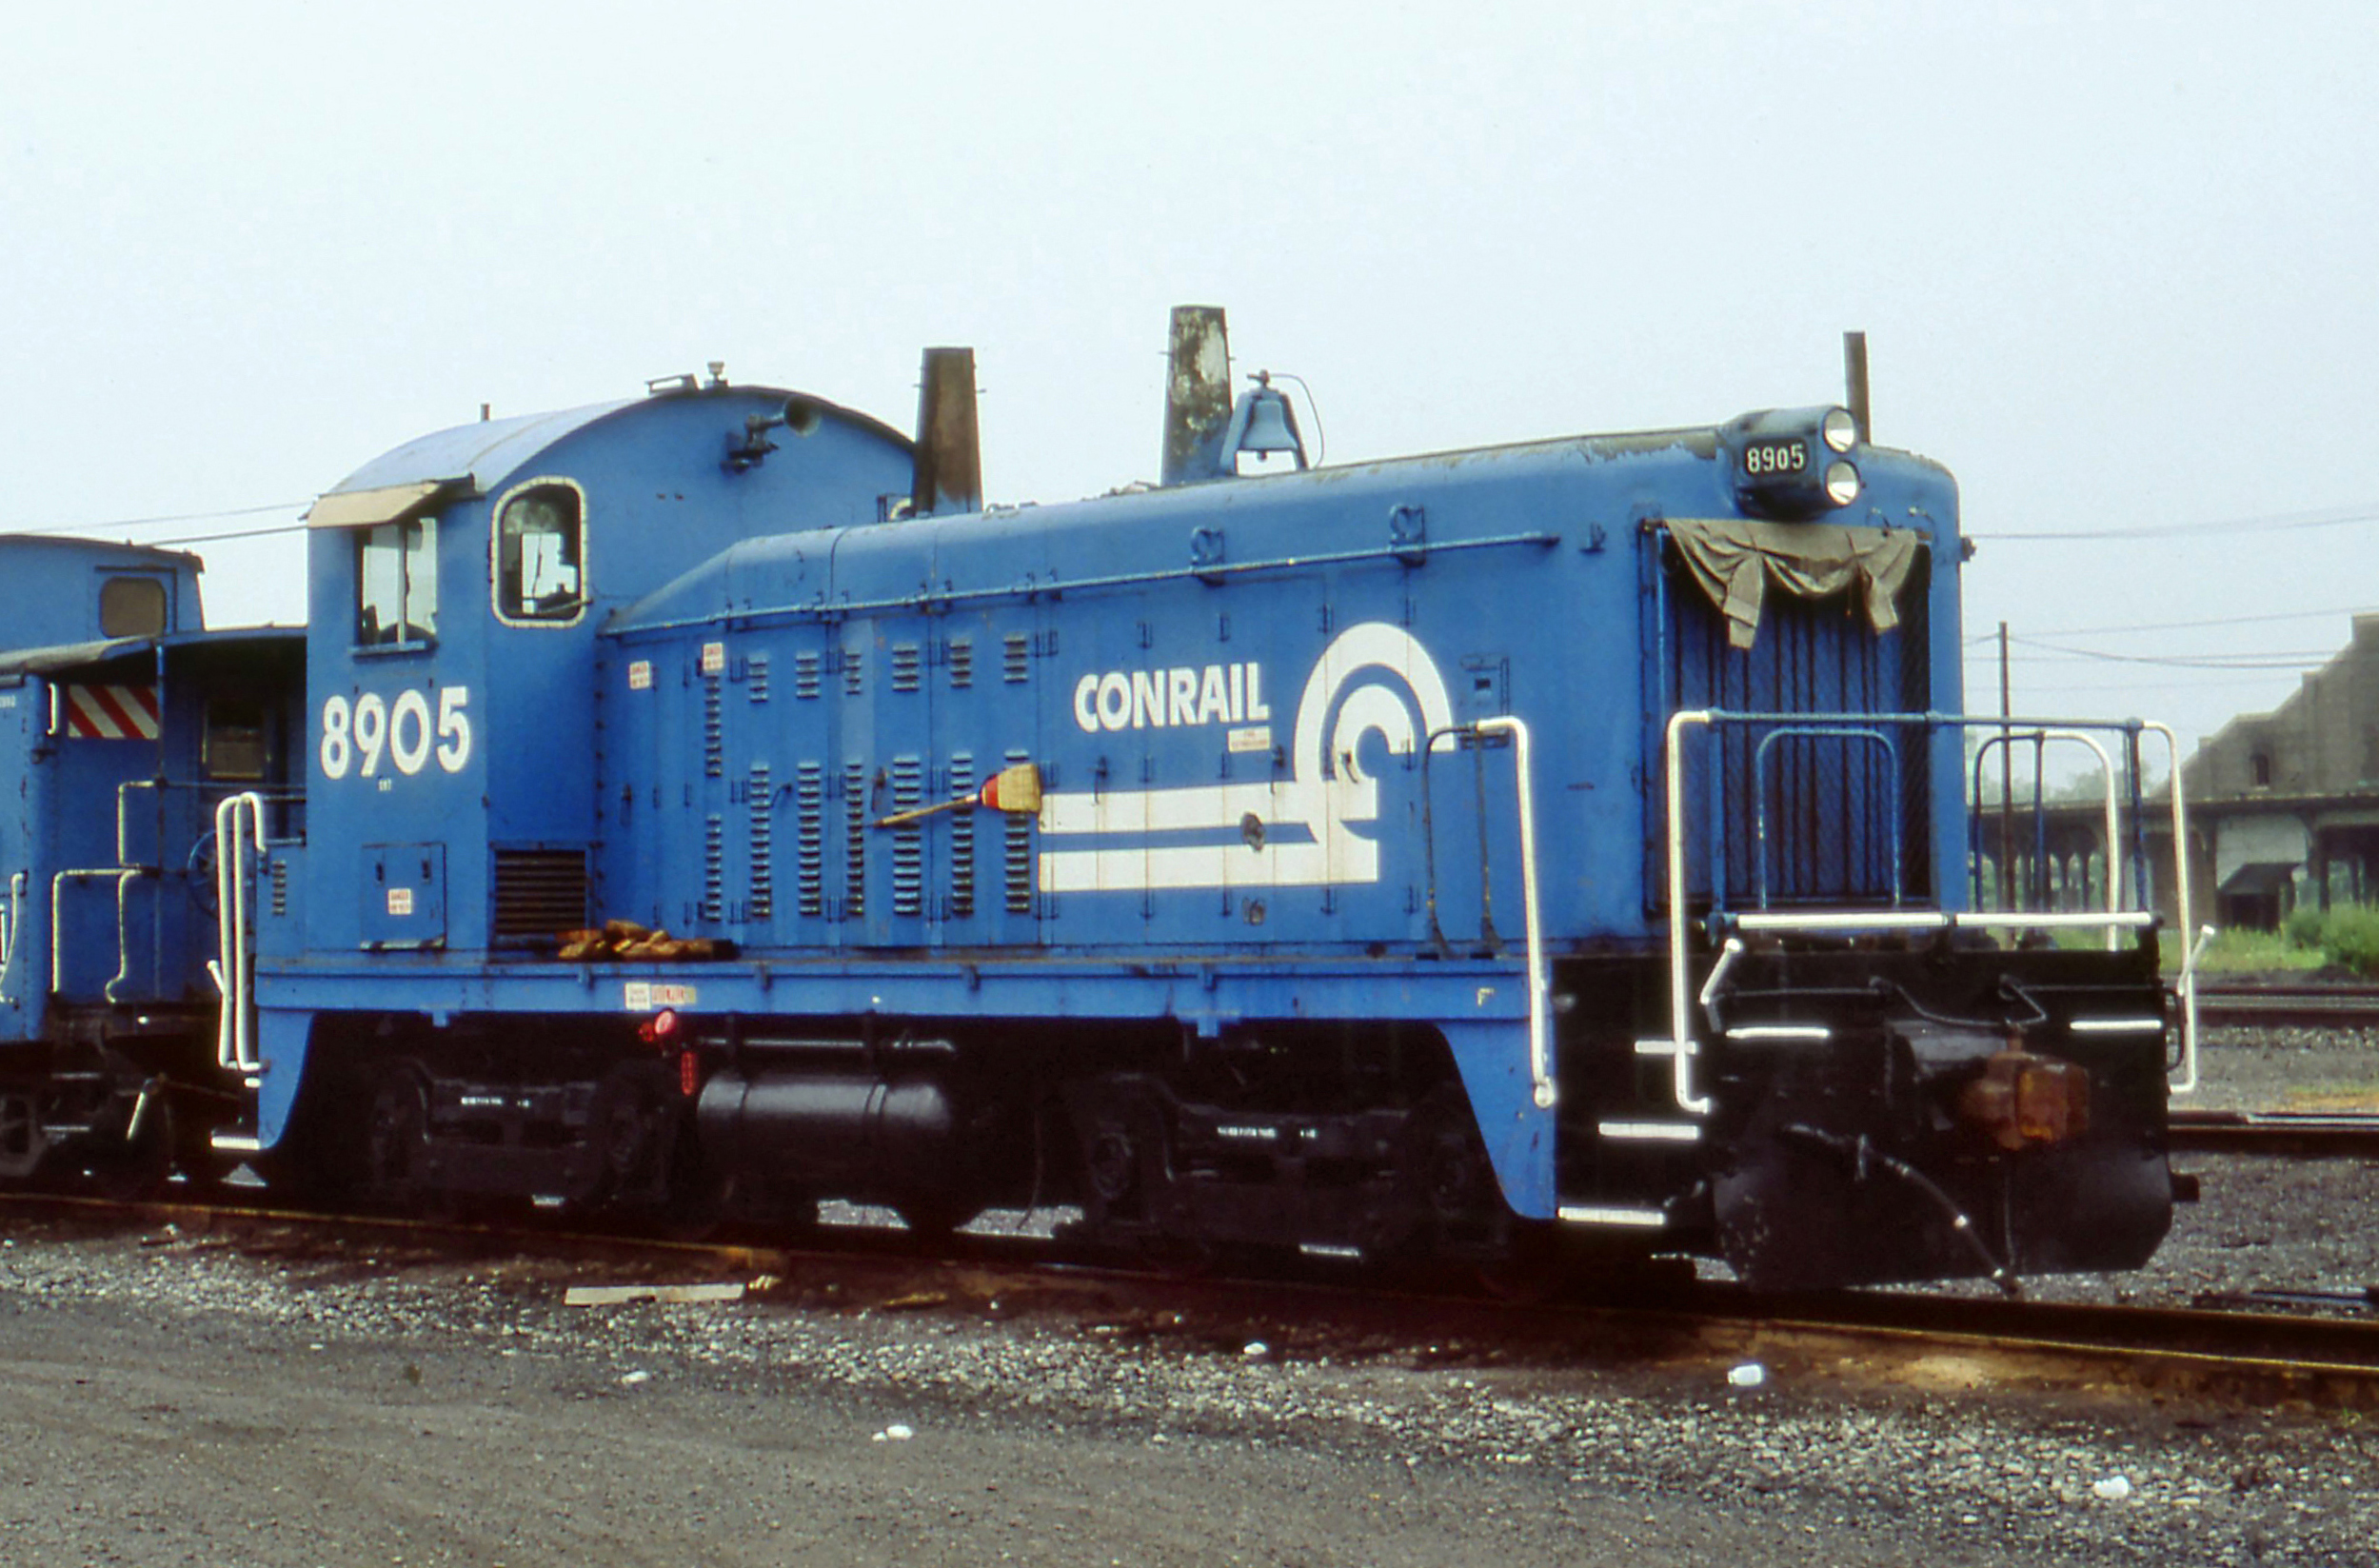 Fully repainted into Conrail colors, the #8905 is in Buffalo, NY on August 13, 1984.  (Lawrence Blanke photo, Melvin Photos collection)